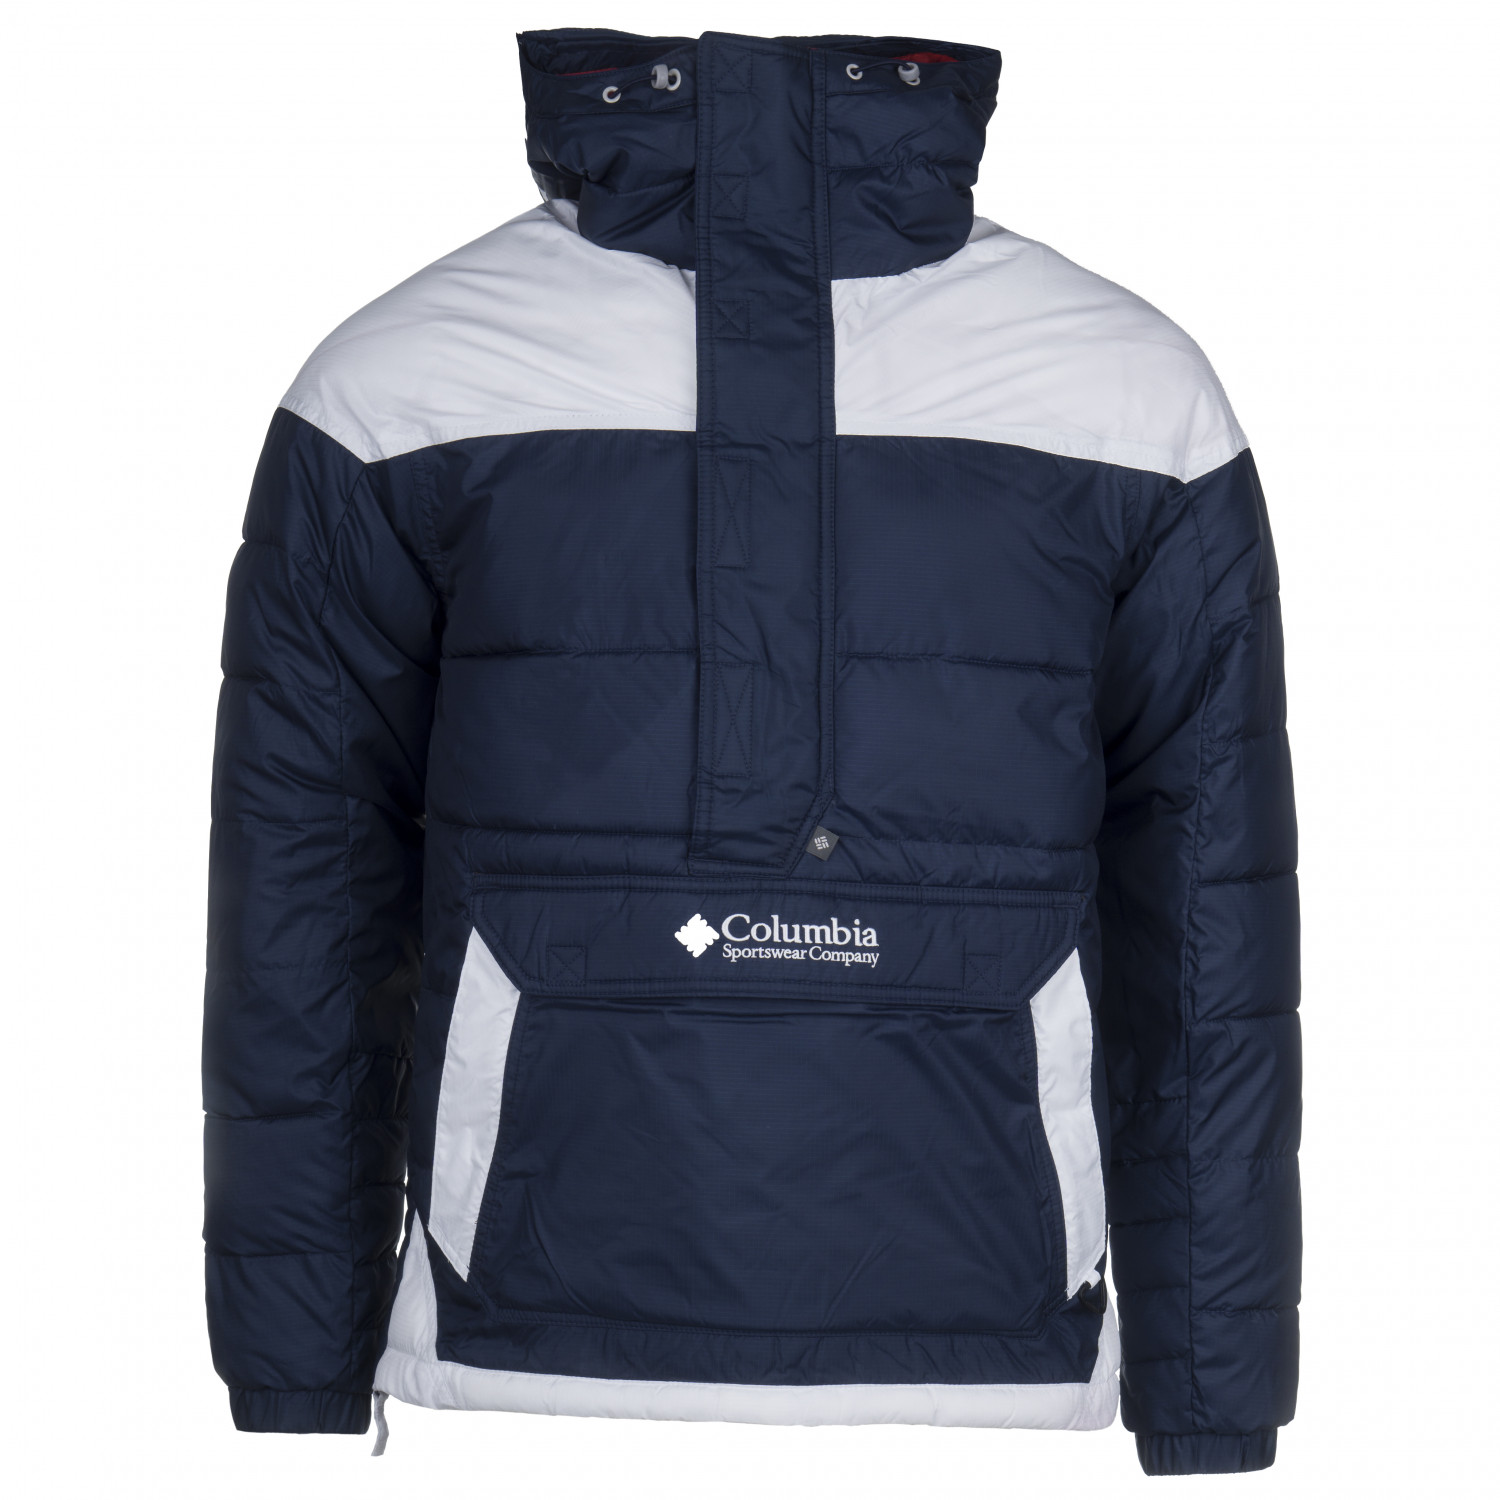 Columbia Columbia Lodge Pullover Jacket Winterjacke Collegiate Navy White Mountain Red | M